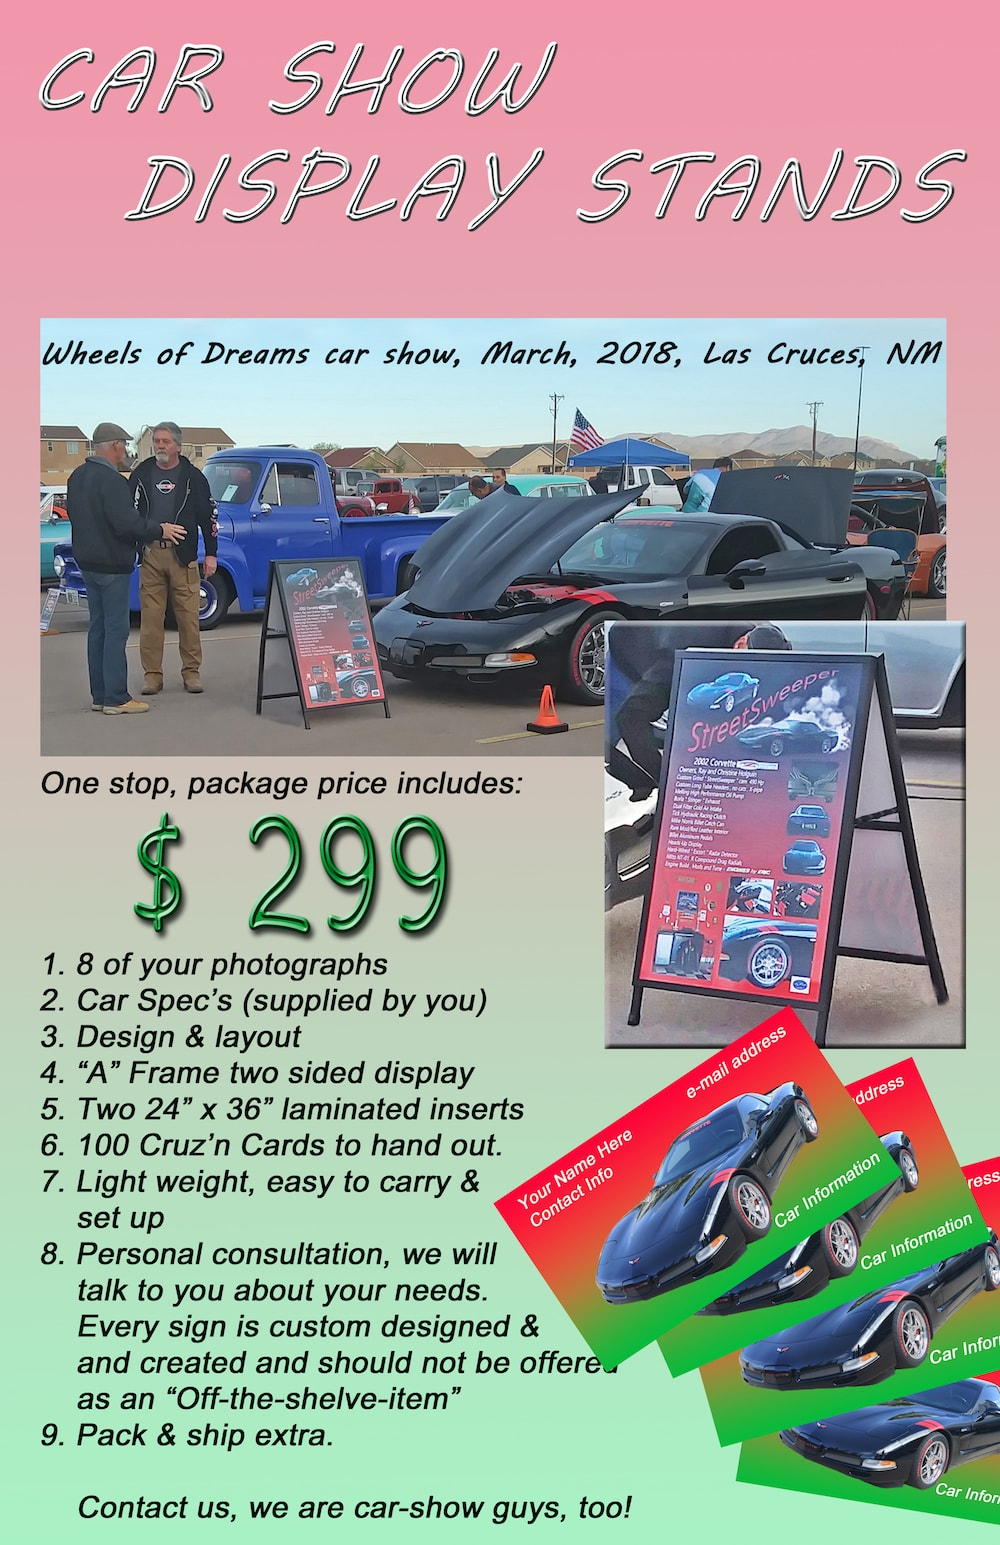 Car Show Displays - Car show display stand for sale